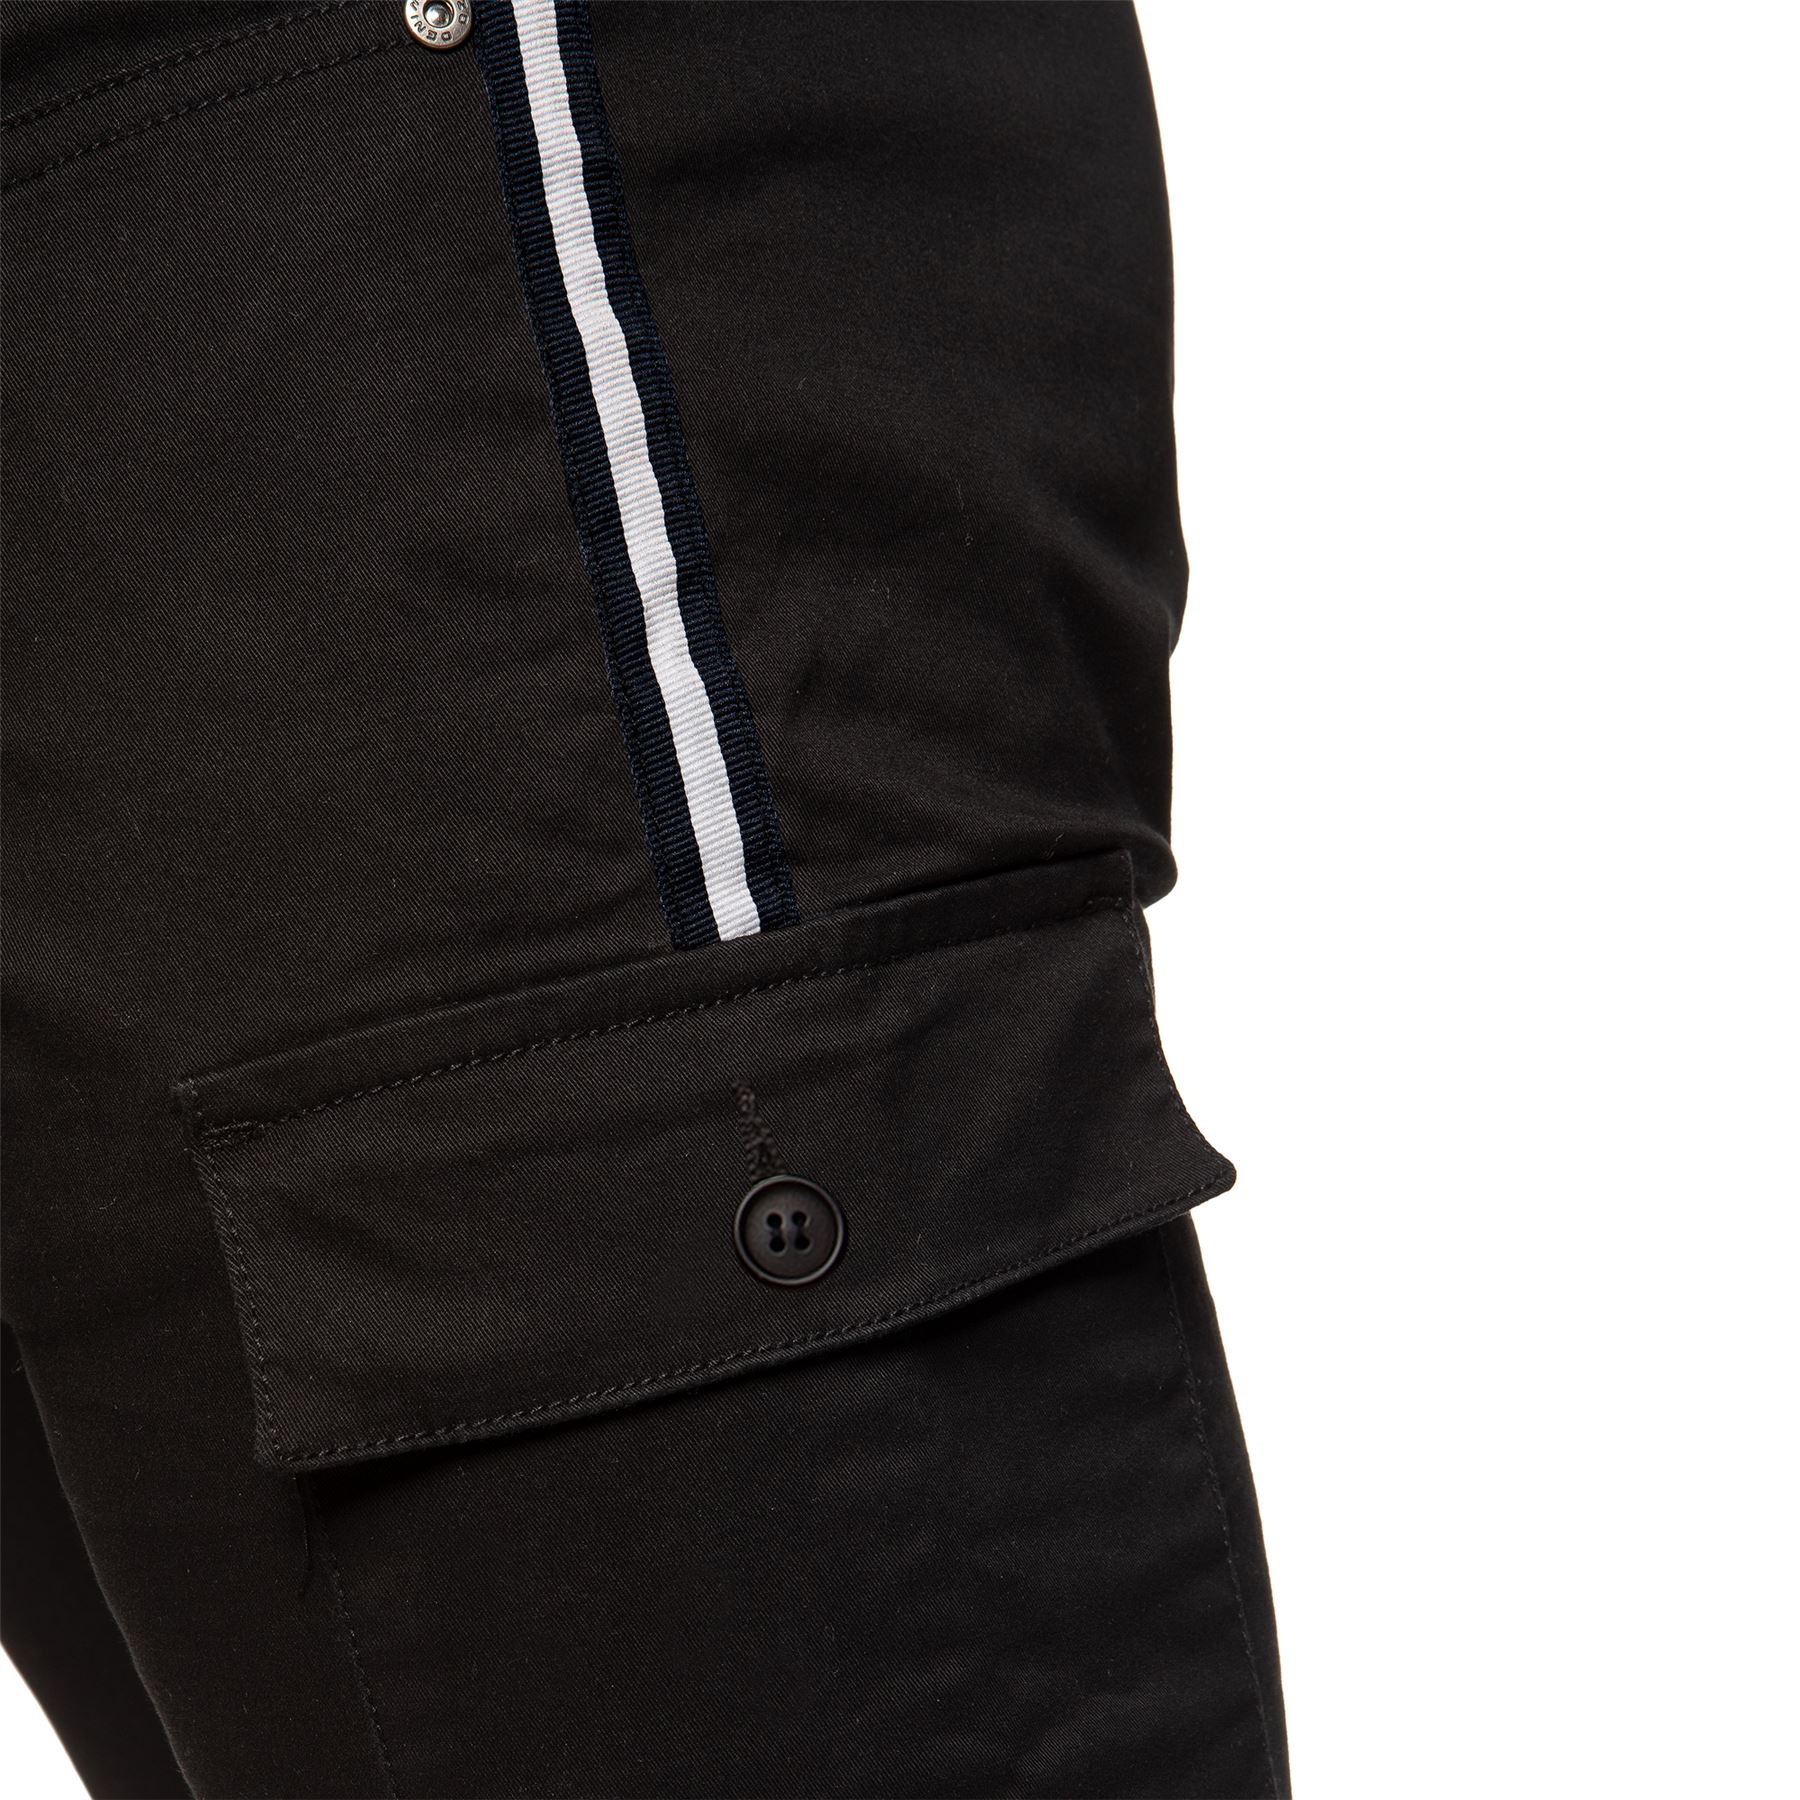 Enzo-Jeans-Mens-Combat-Trousers-Cargo-Chinos-Slim-Stretch-Cuffed-Joggers-Pants thumbnail 7